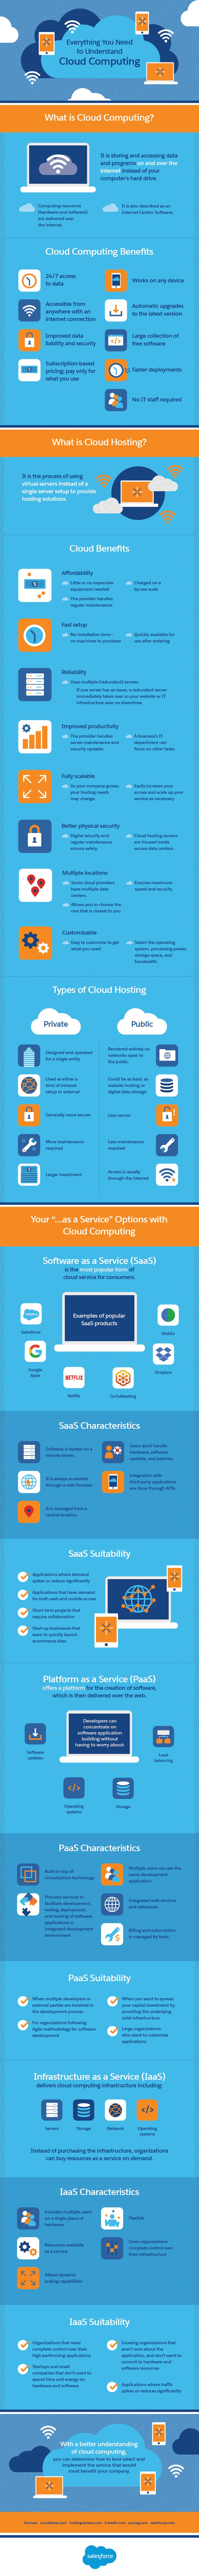 Everything You Need to Understand Cloud Computing #Infographic #CloudComputing